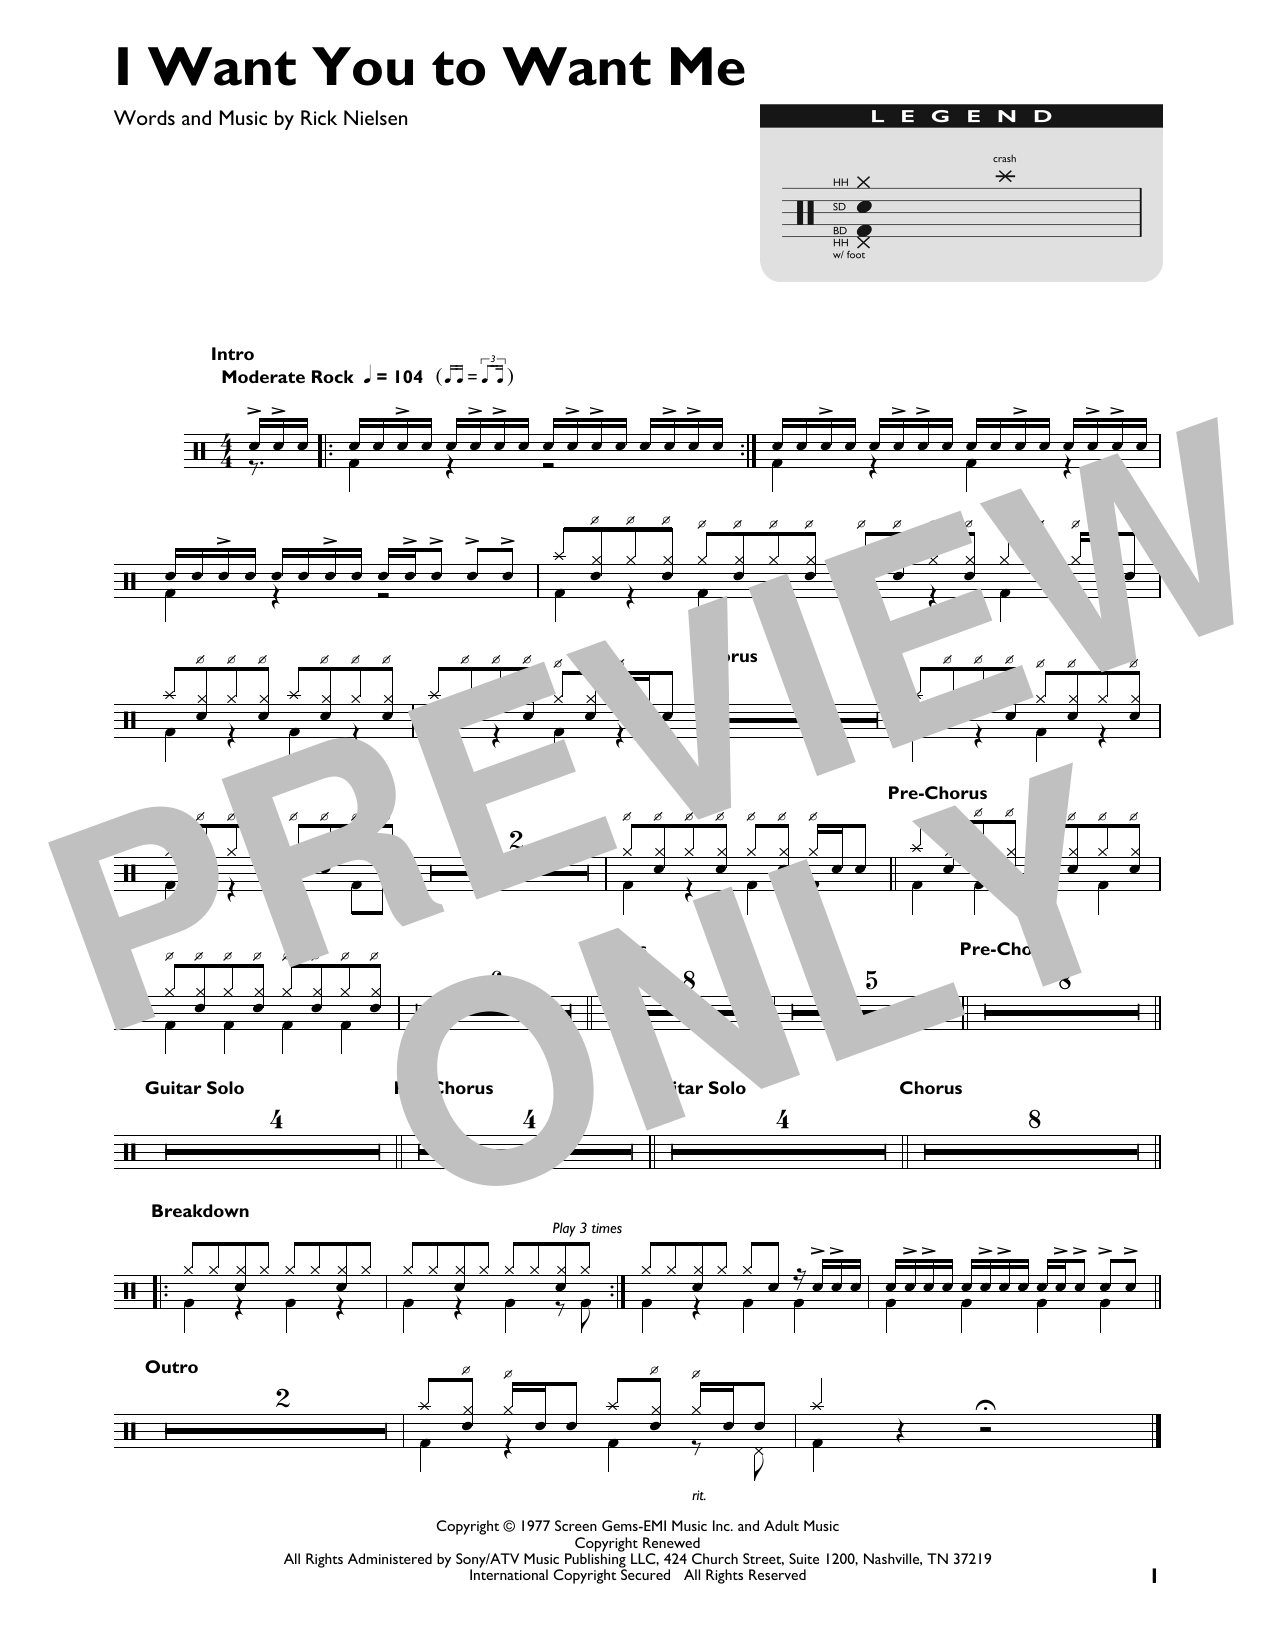 I Want You To Want Me Sheet Music